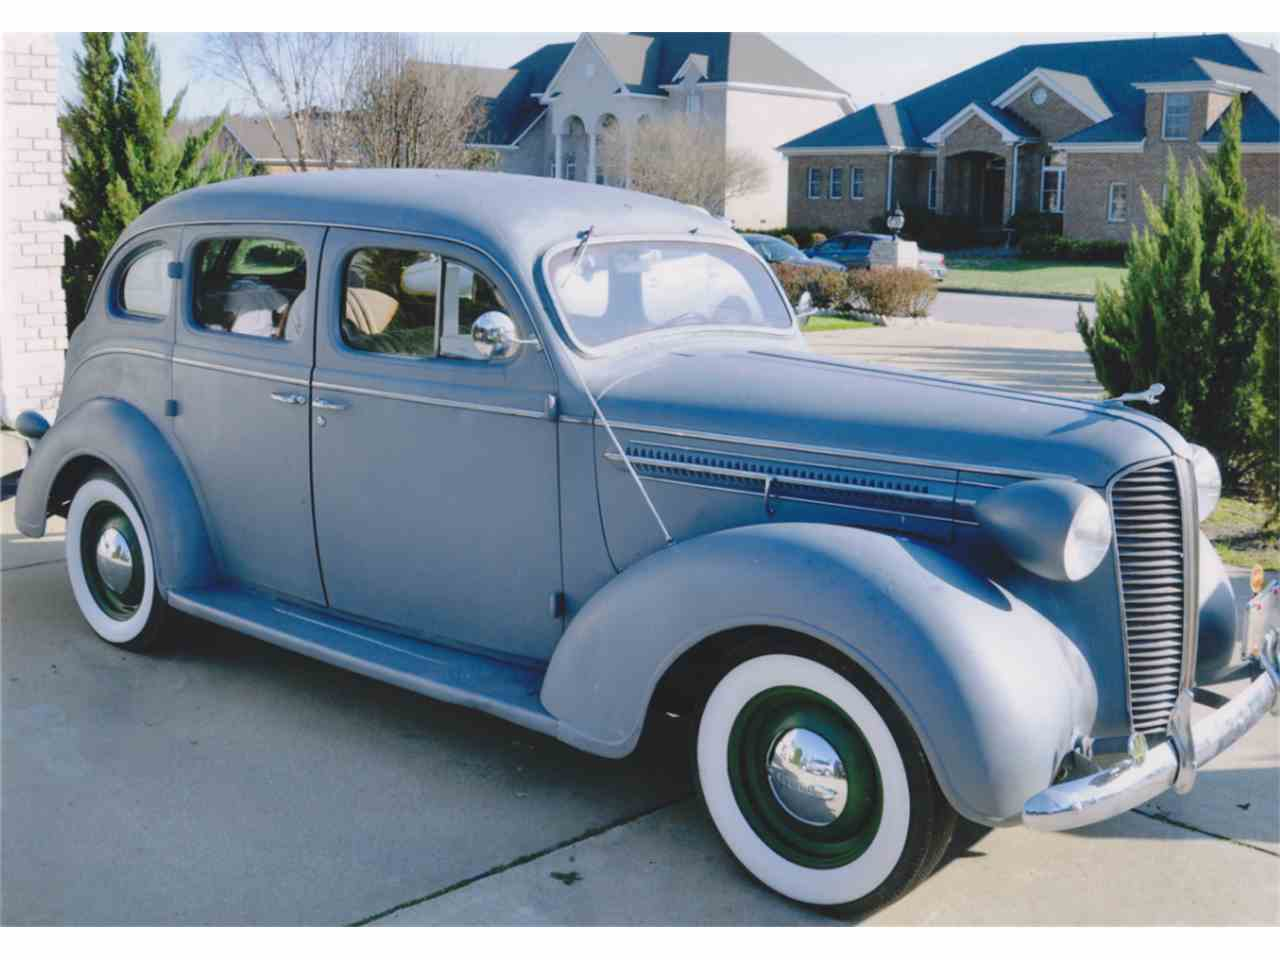 Used 1940 ford coupe for sale on craigslist autos post for Long windows for sale